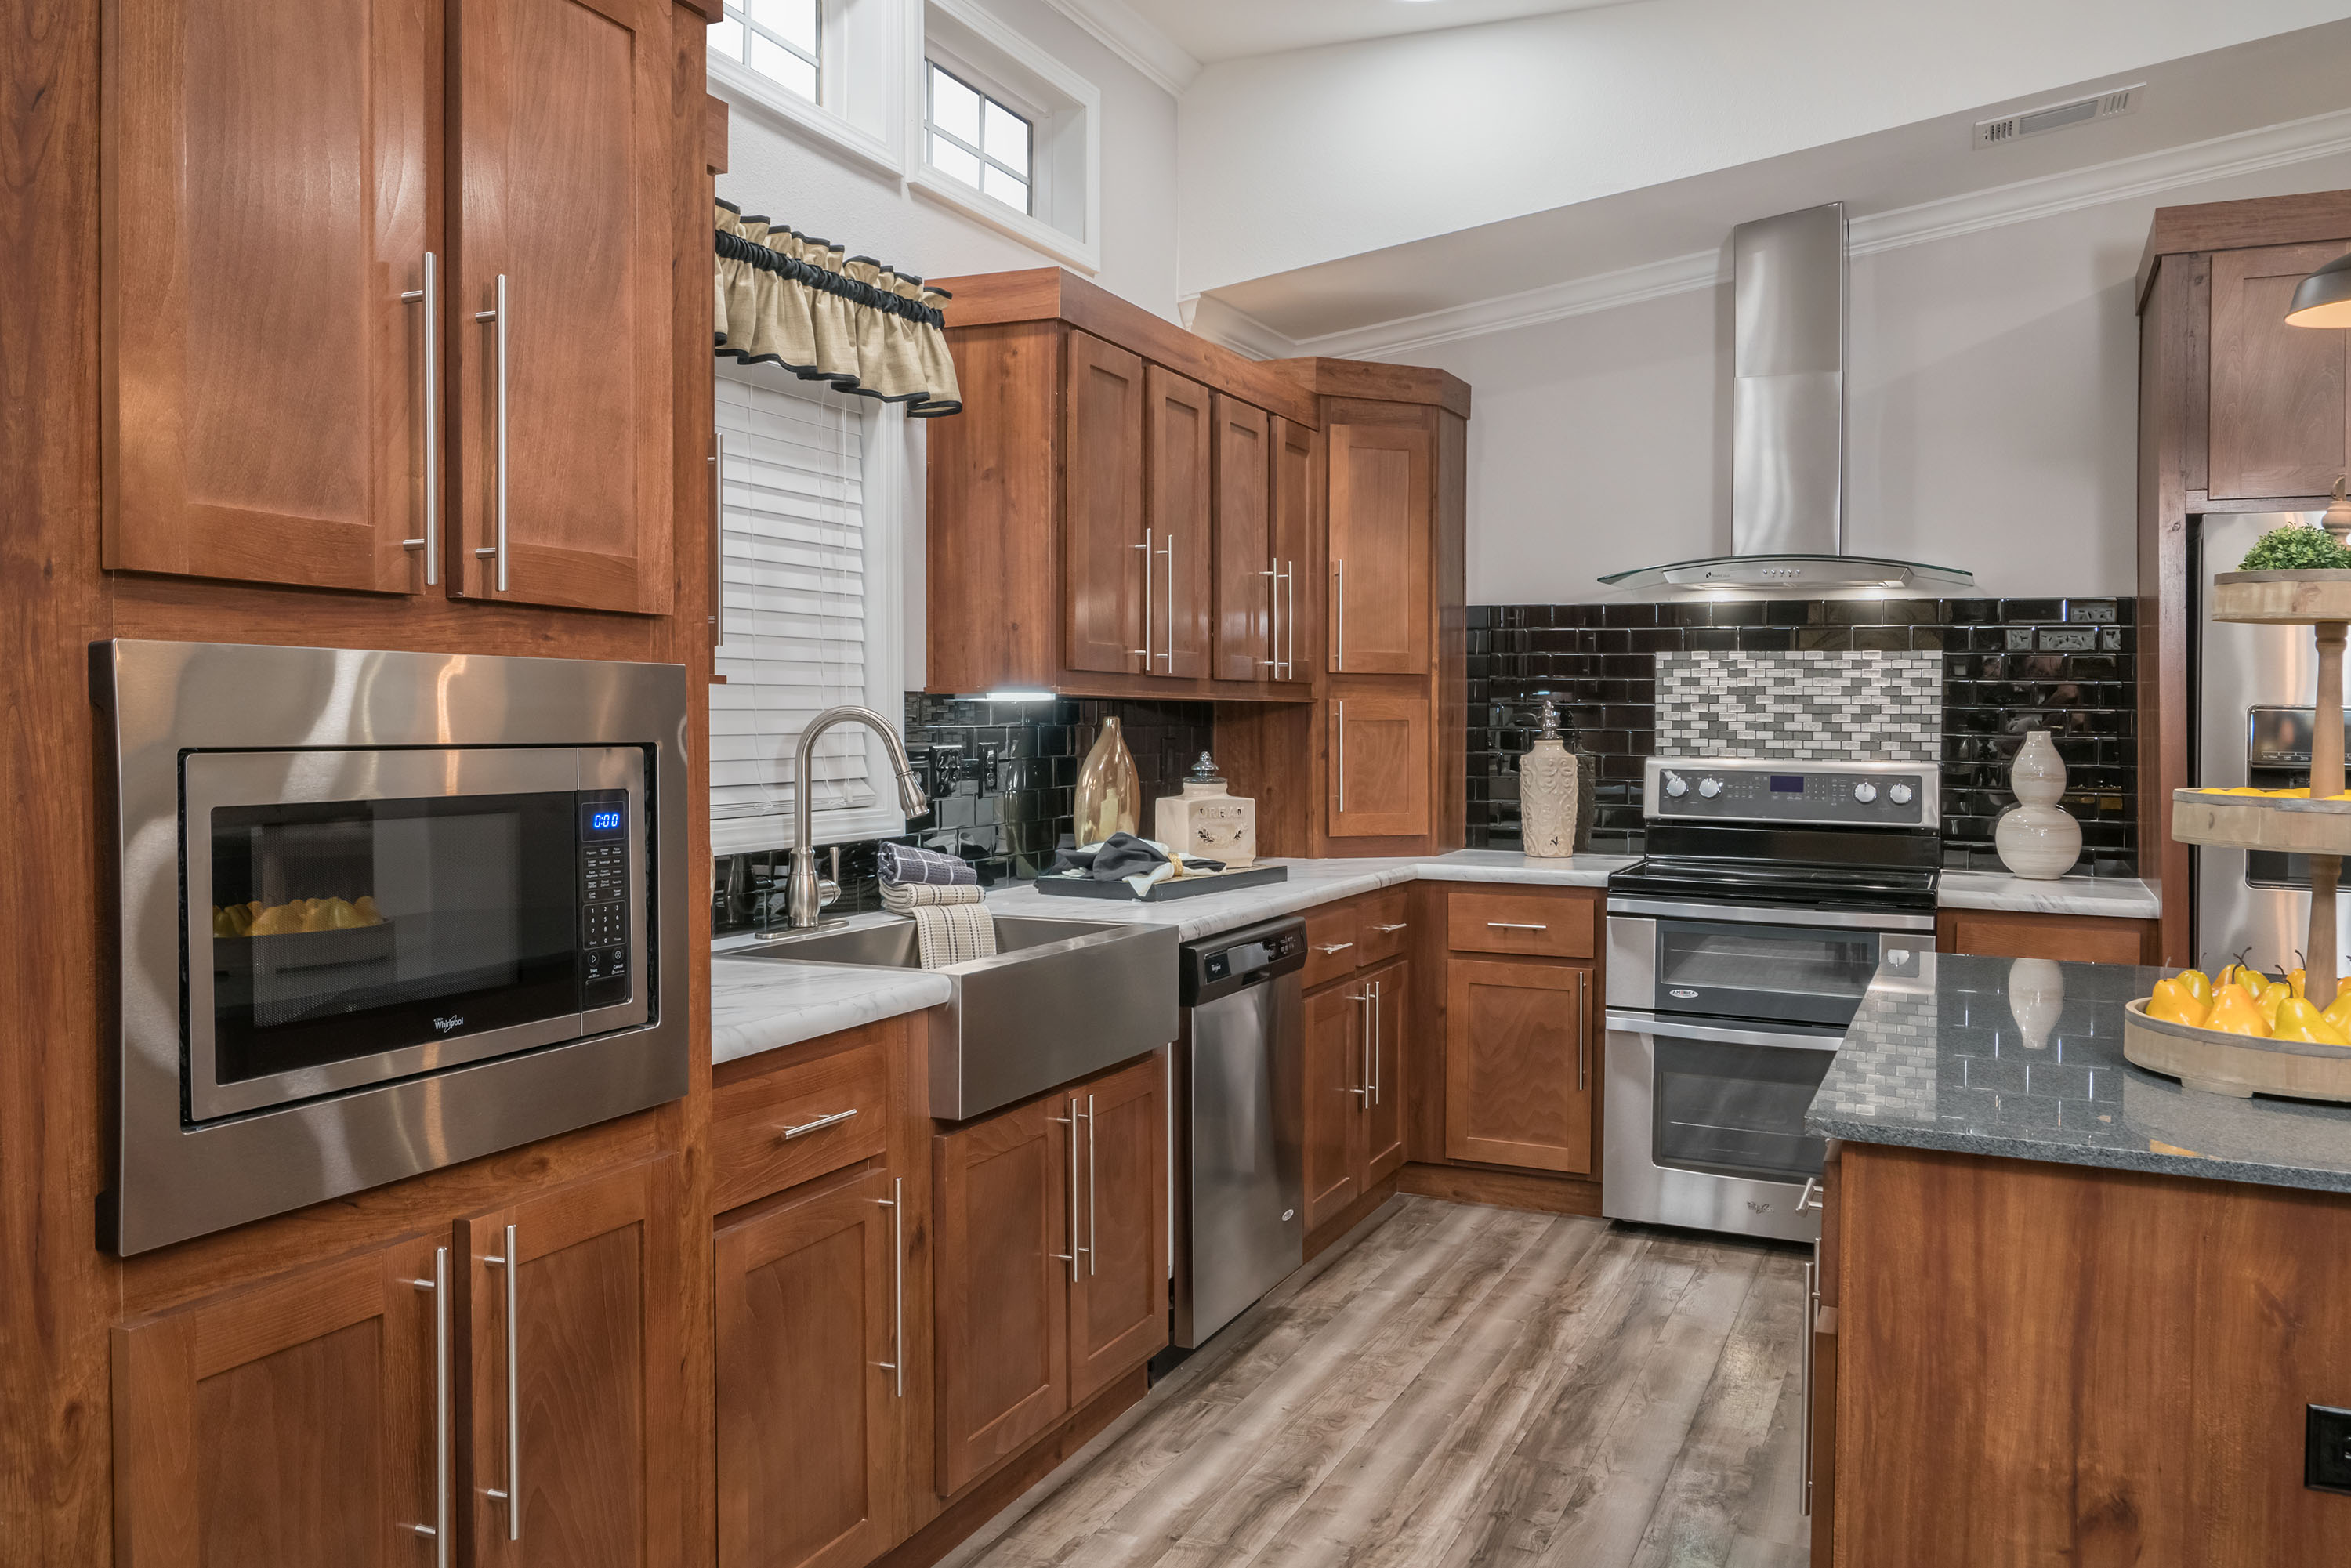 Factory Built Perks: Reasons to Buy a Manufactured Home